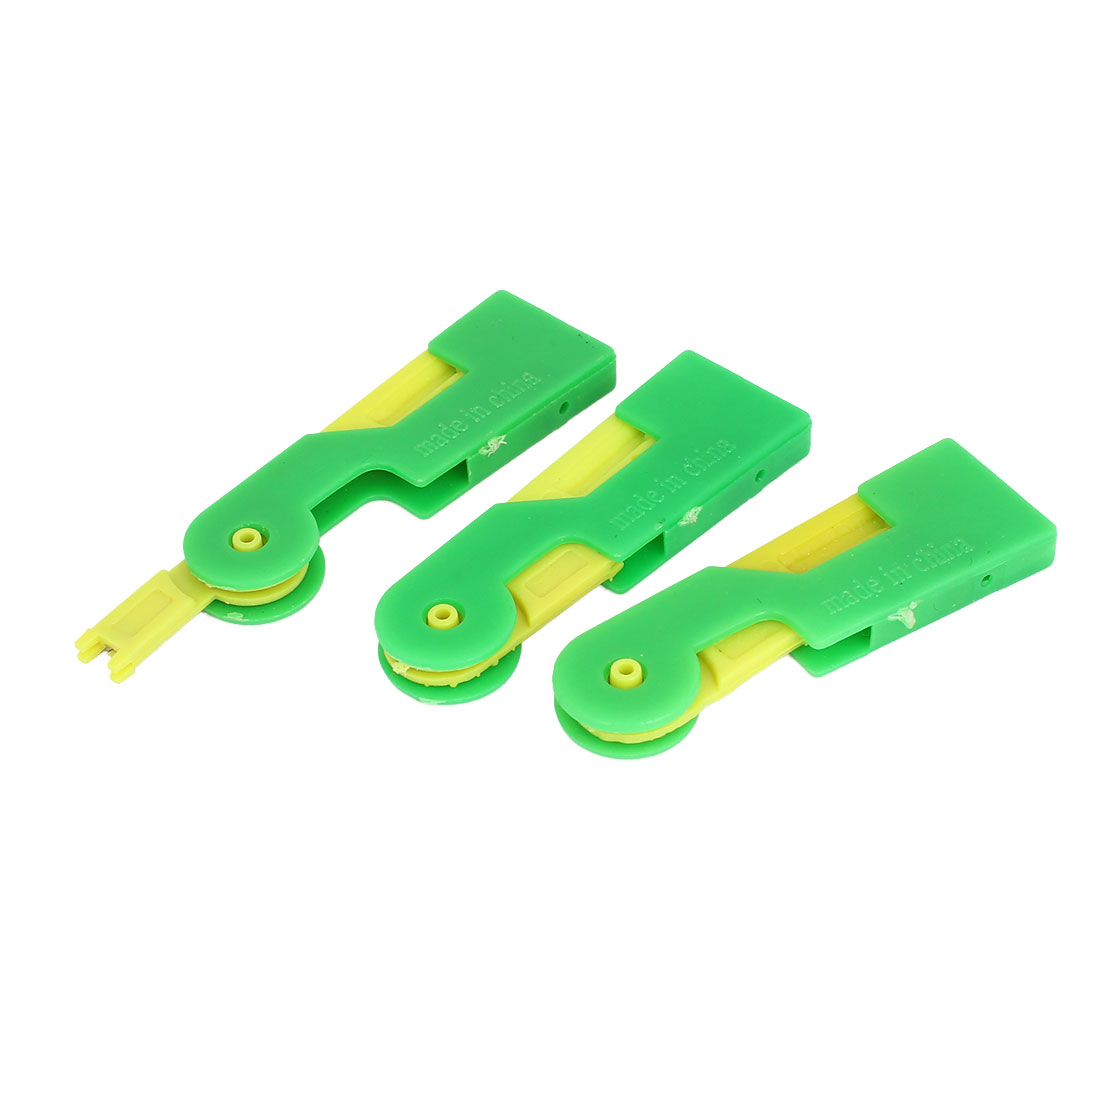 3pcs Plastic Press Button Automatic Sewing Needle Threader Stitch